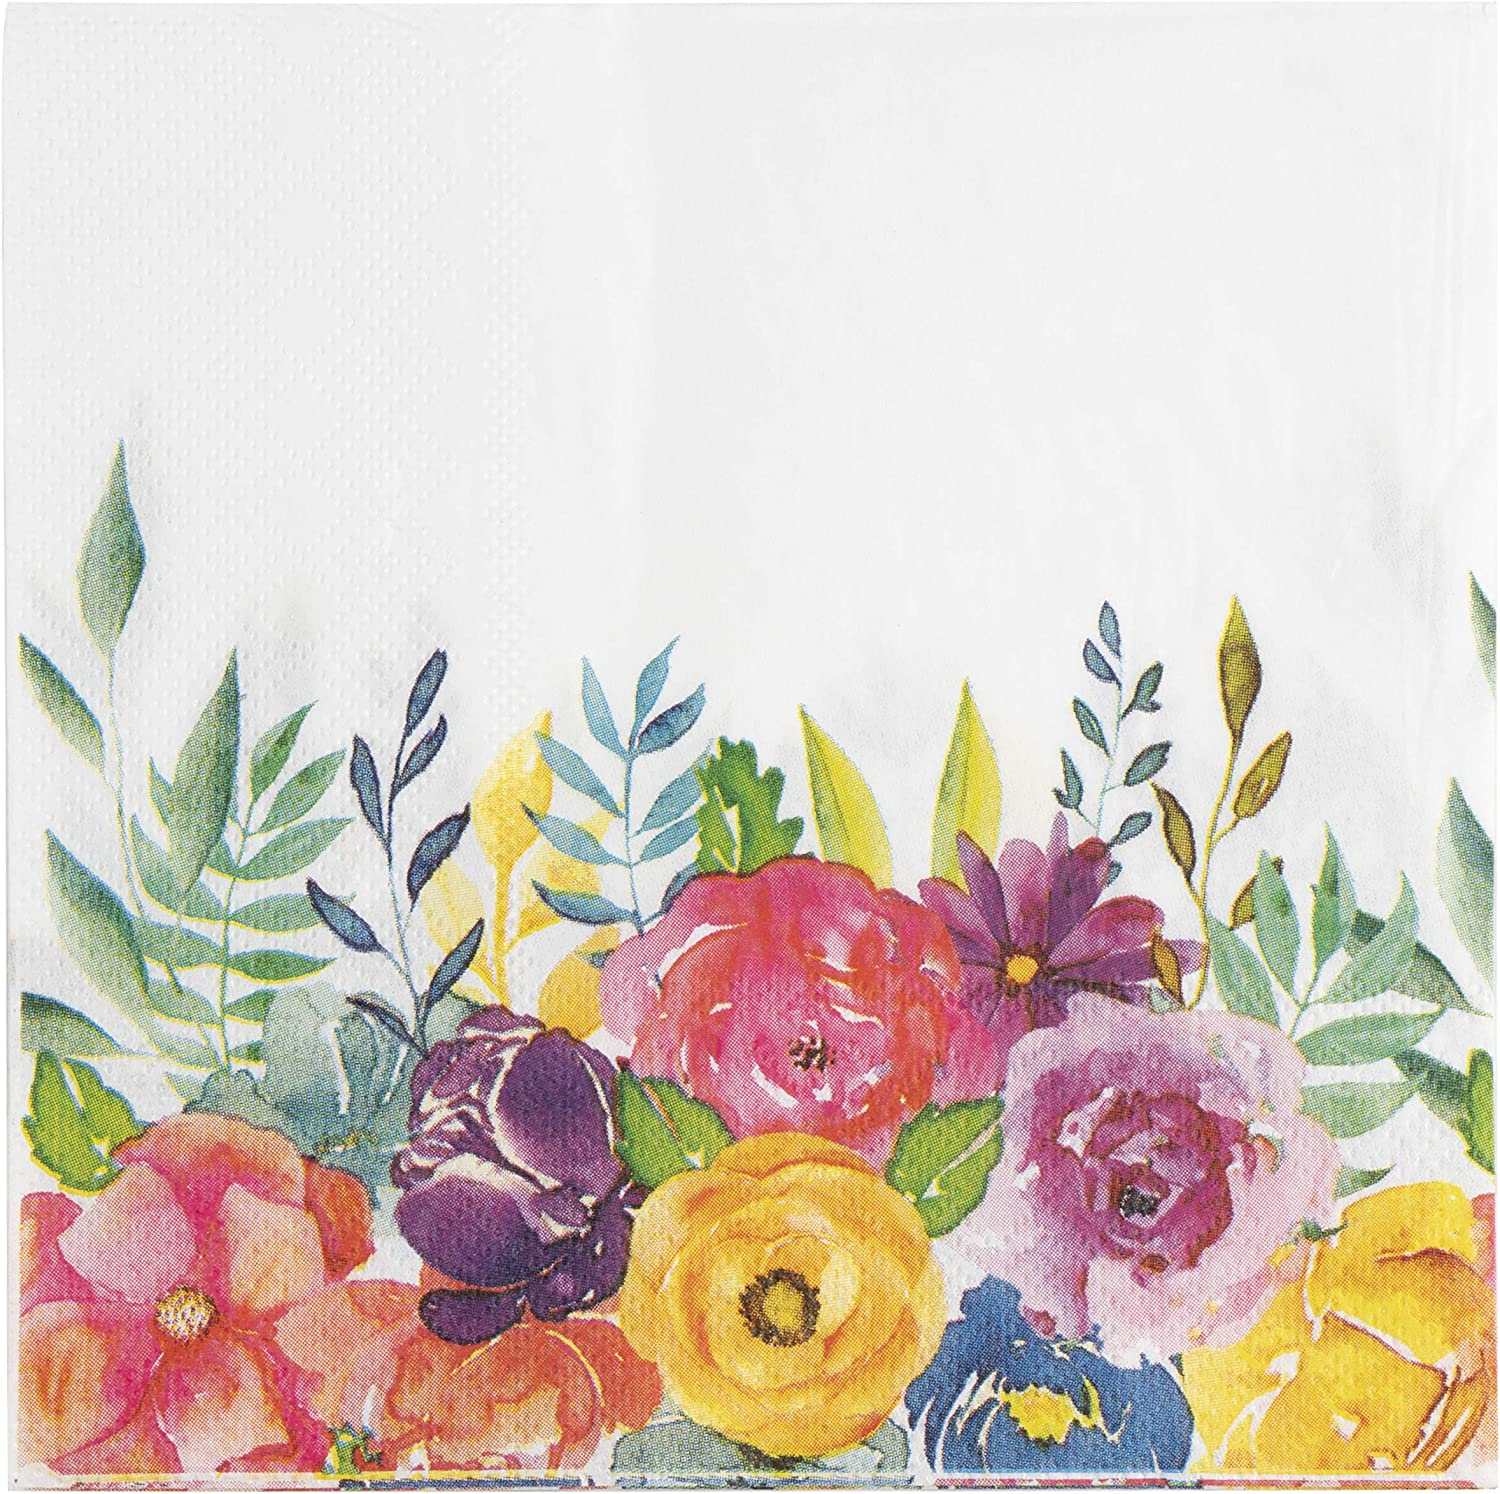 Amazon Com Floral Paper Napkins For Bridal Shower Birthday Party 6 5 Inches 100 Pack Health Personal Care